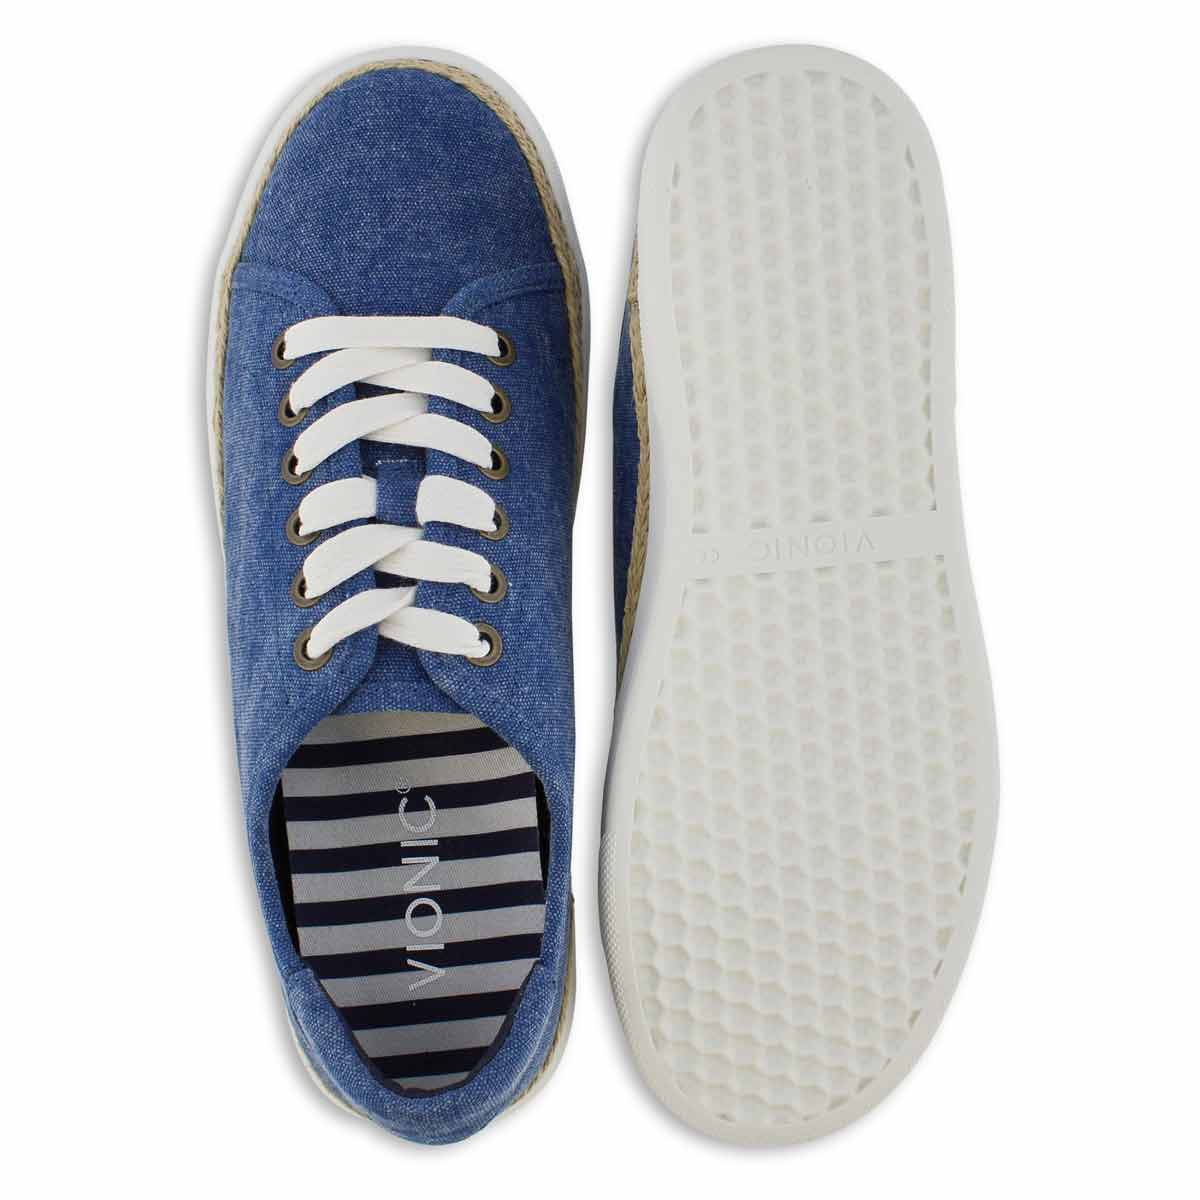 Lds Hattie navy lace up sneaker